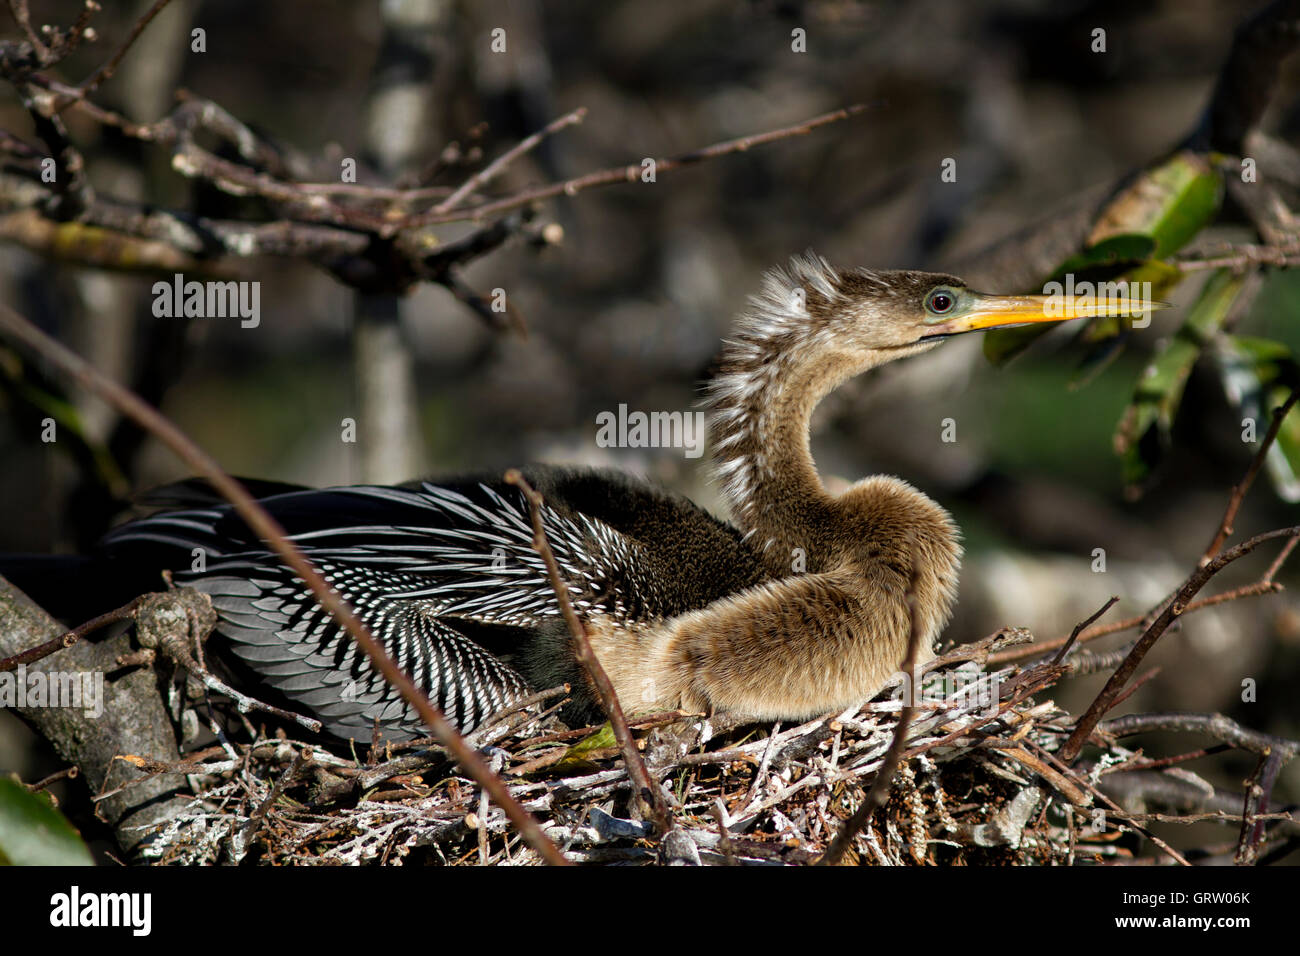 Female Anhinga anhinga sits on her nest incubating eggs. The intensified blue green lore and brilliant ruby eye - Stock Image